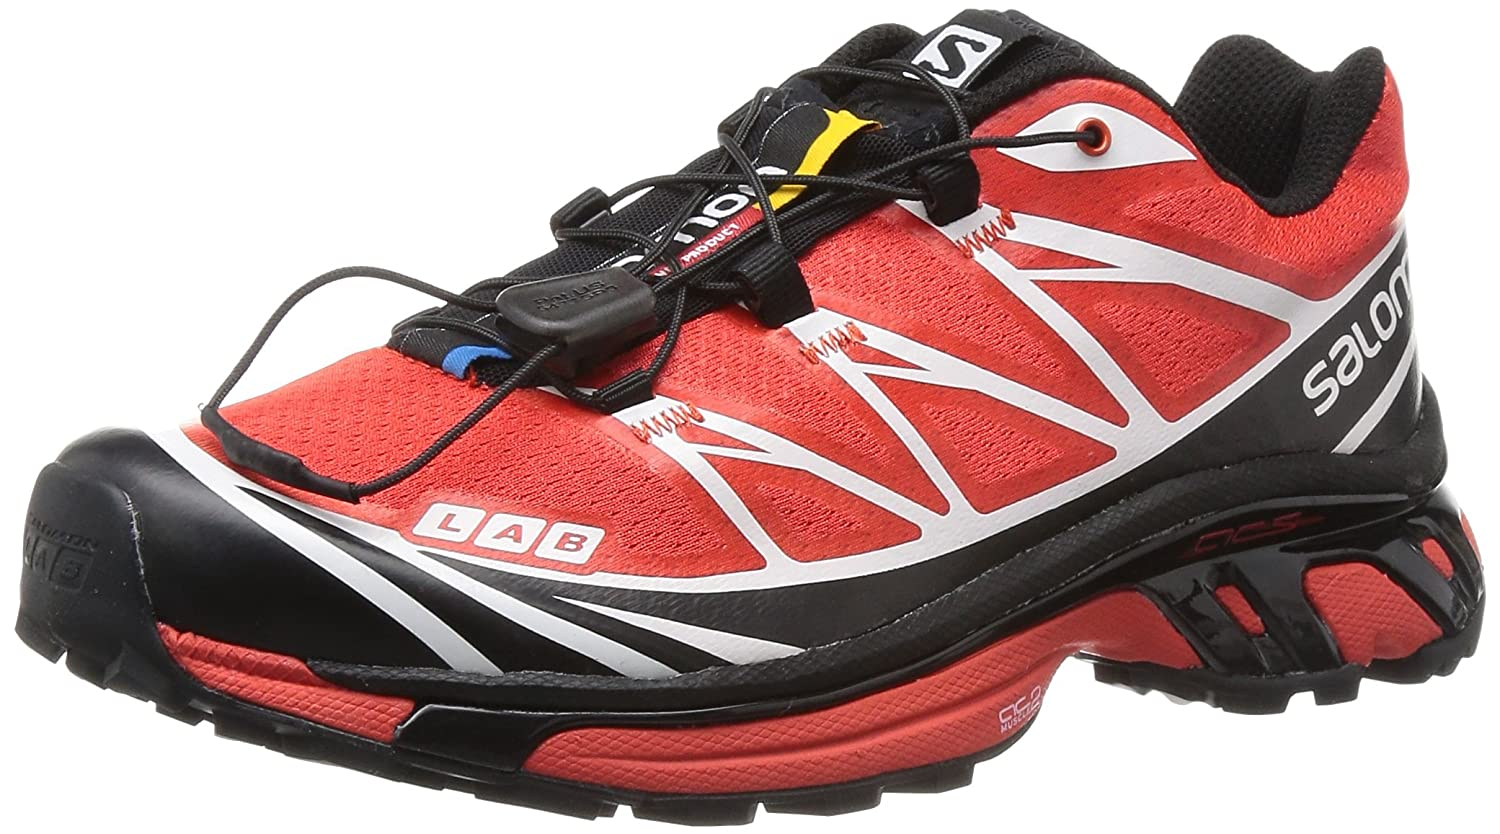 Salomon メンズ Salomon S-Lab XT 6 SG Trail Running Shoe - Men's B00AO0K3X0 7.5 D(M) US ブラック レッド